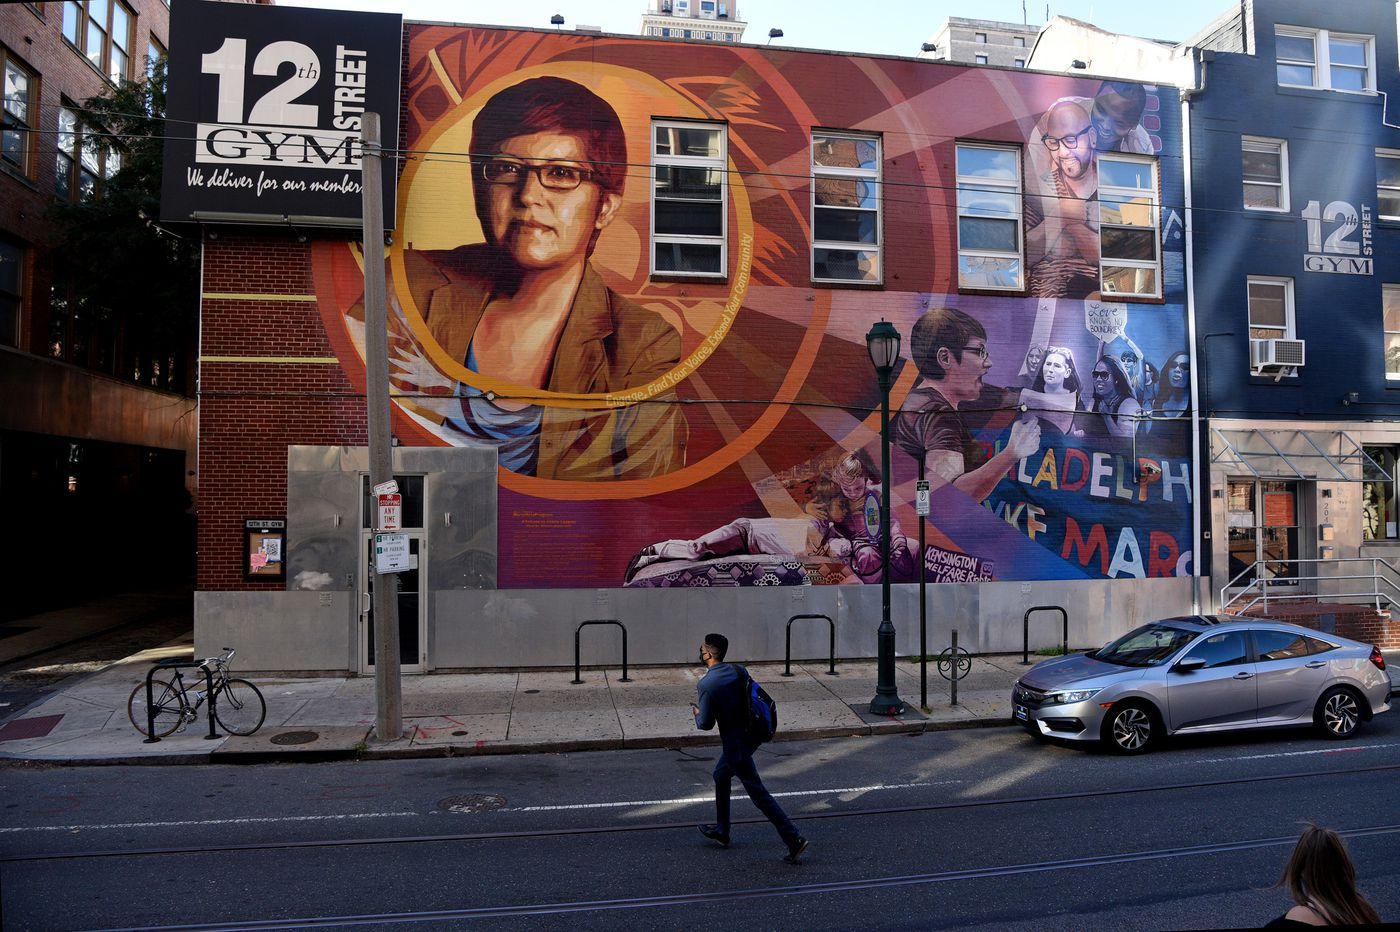 Gloria Casarez mural is irreplaceable and must be saved | Opinion